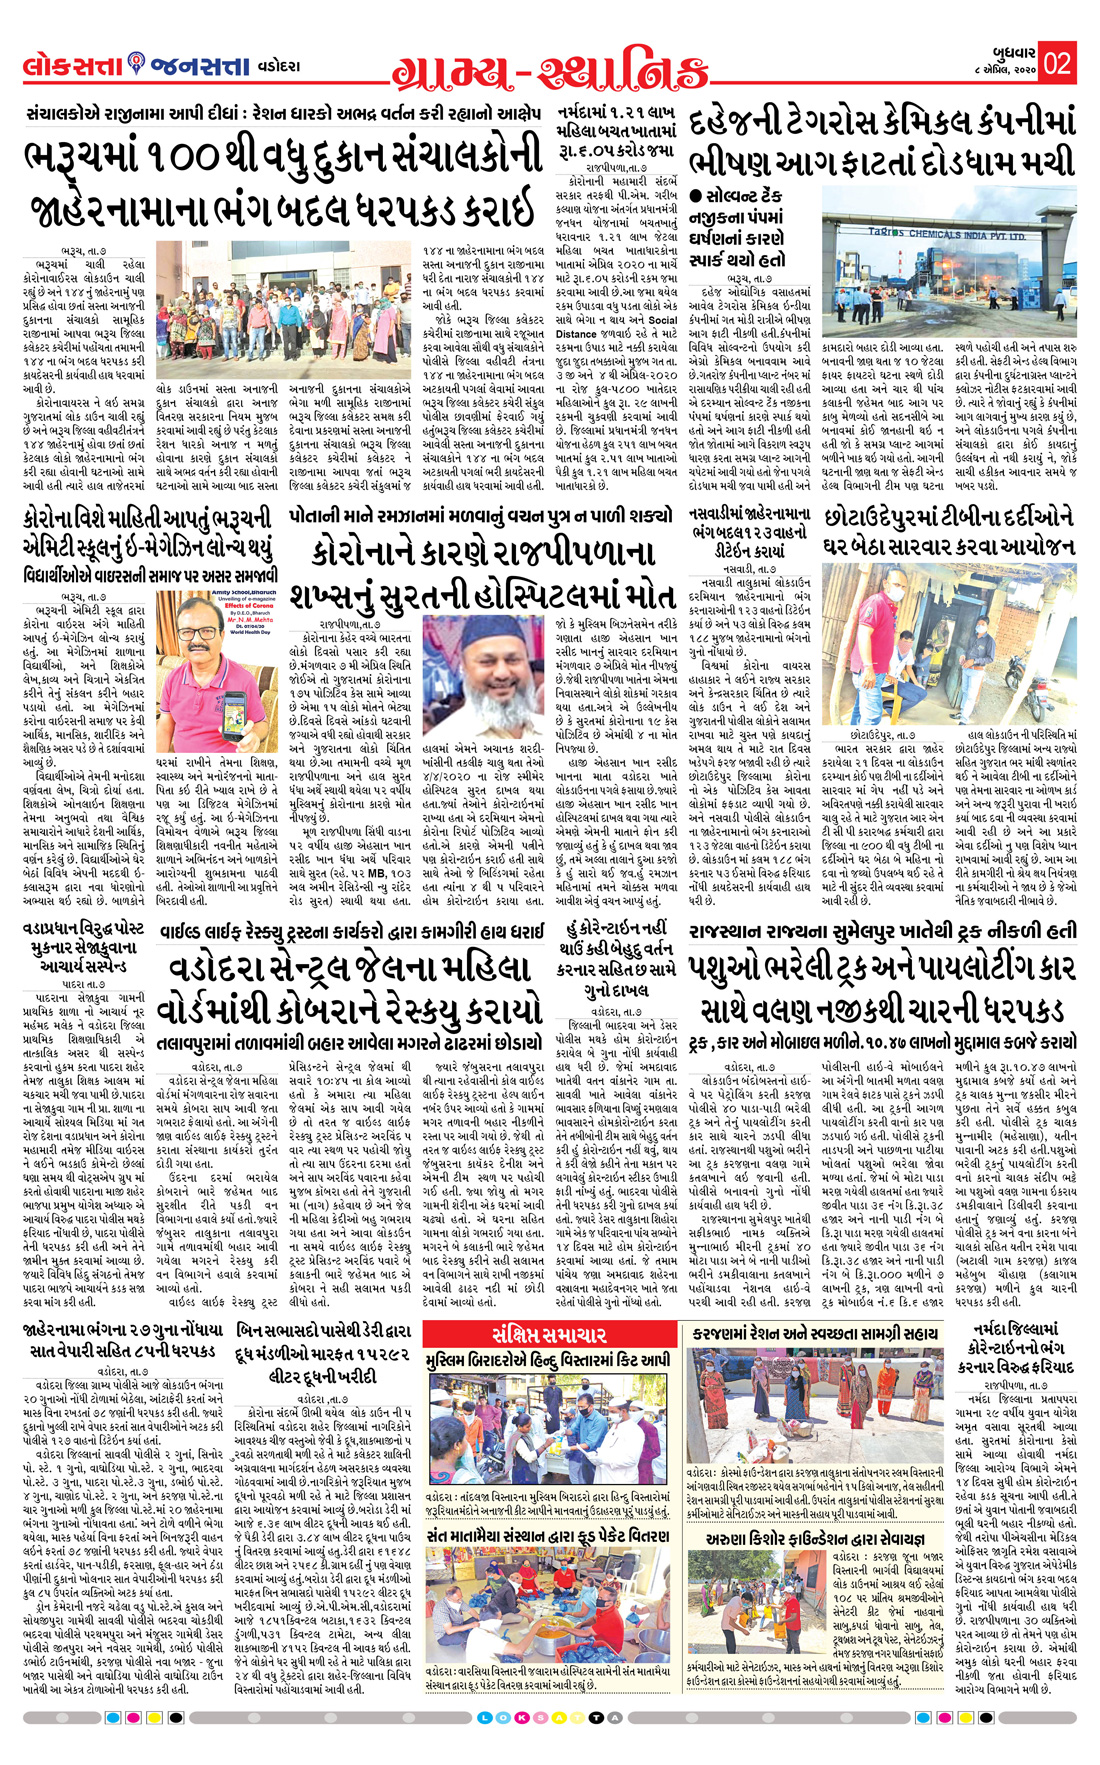 Loksatta Jansatta News Papaer E-paper dated 2020-04-08 | Page 2